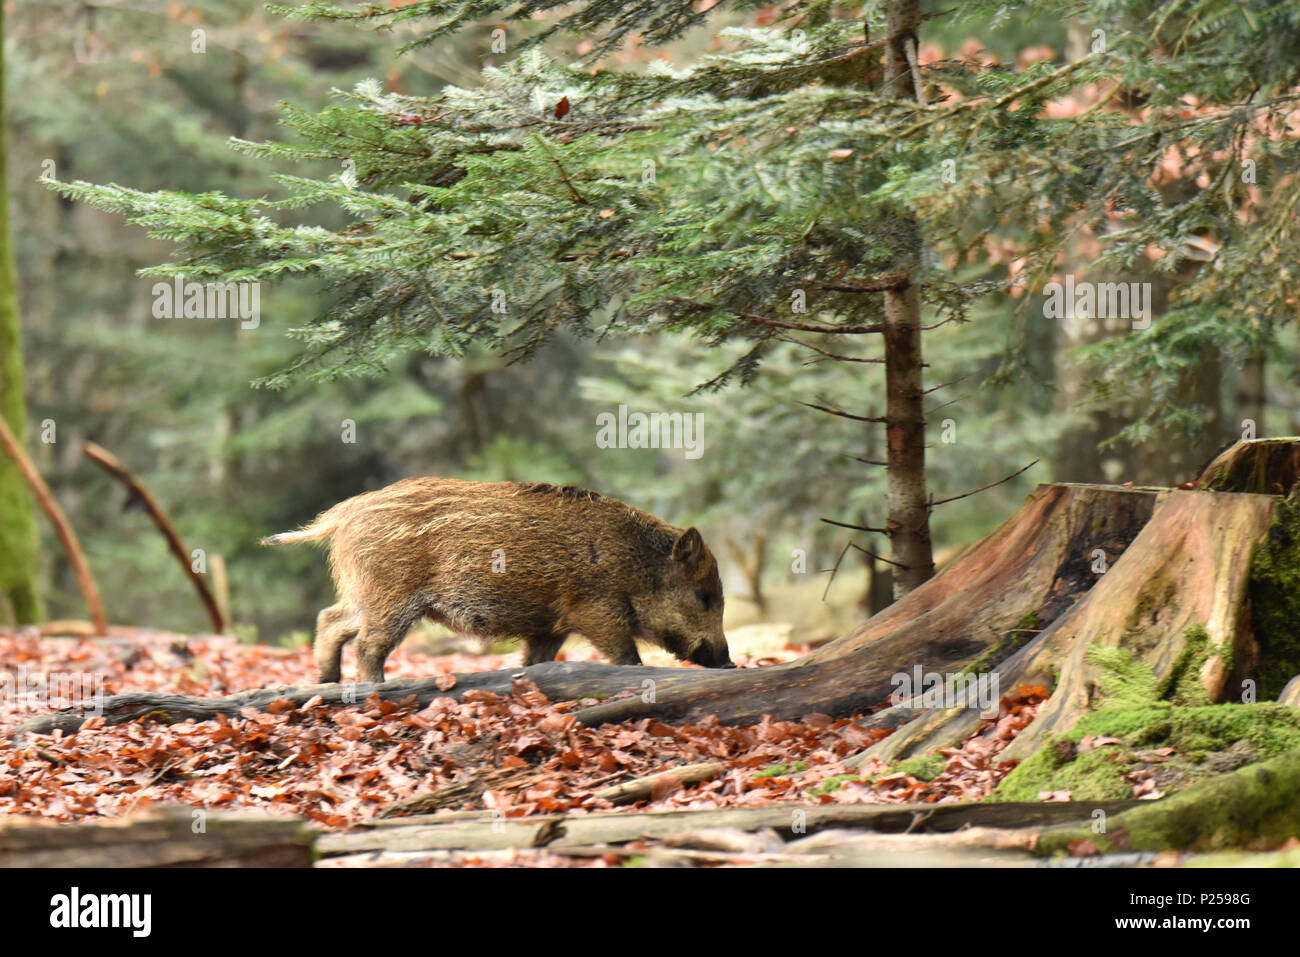 Forest, wild boar, piglet, eat, - Stock Image